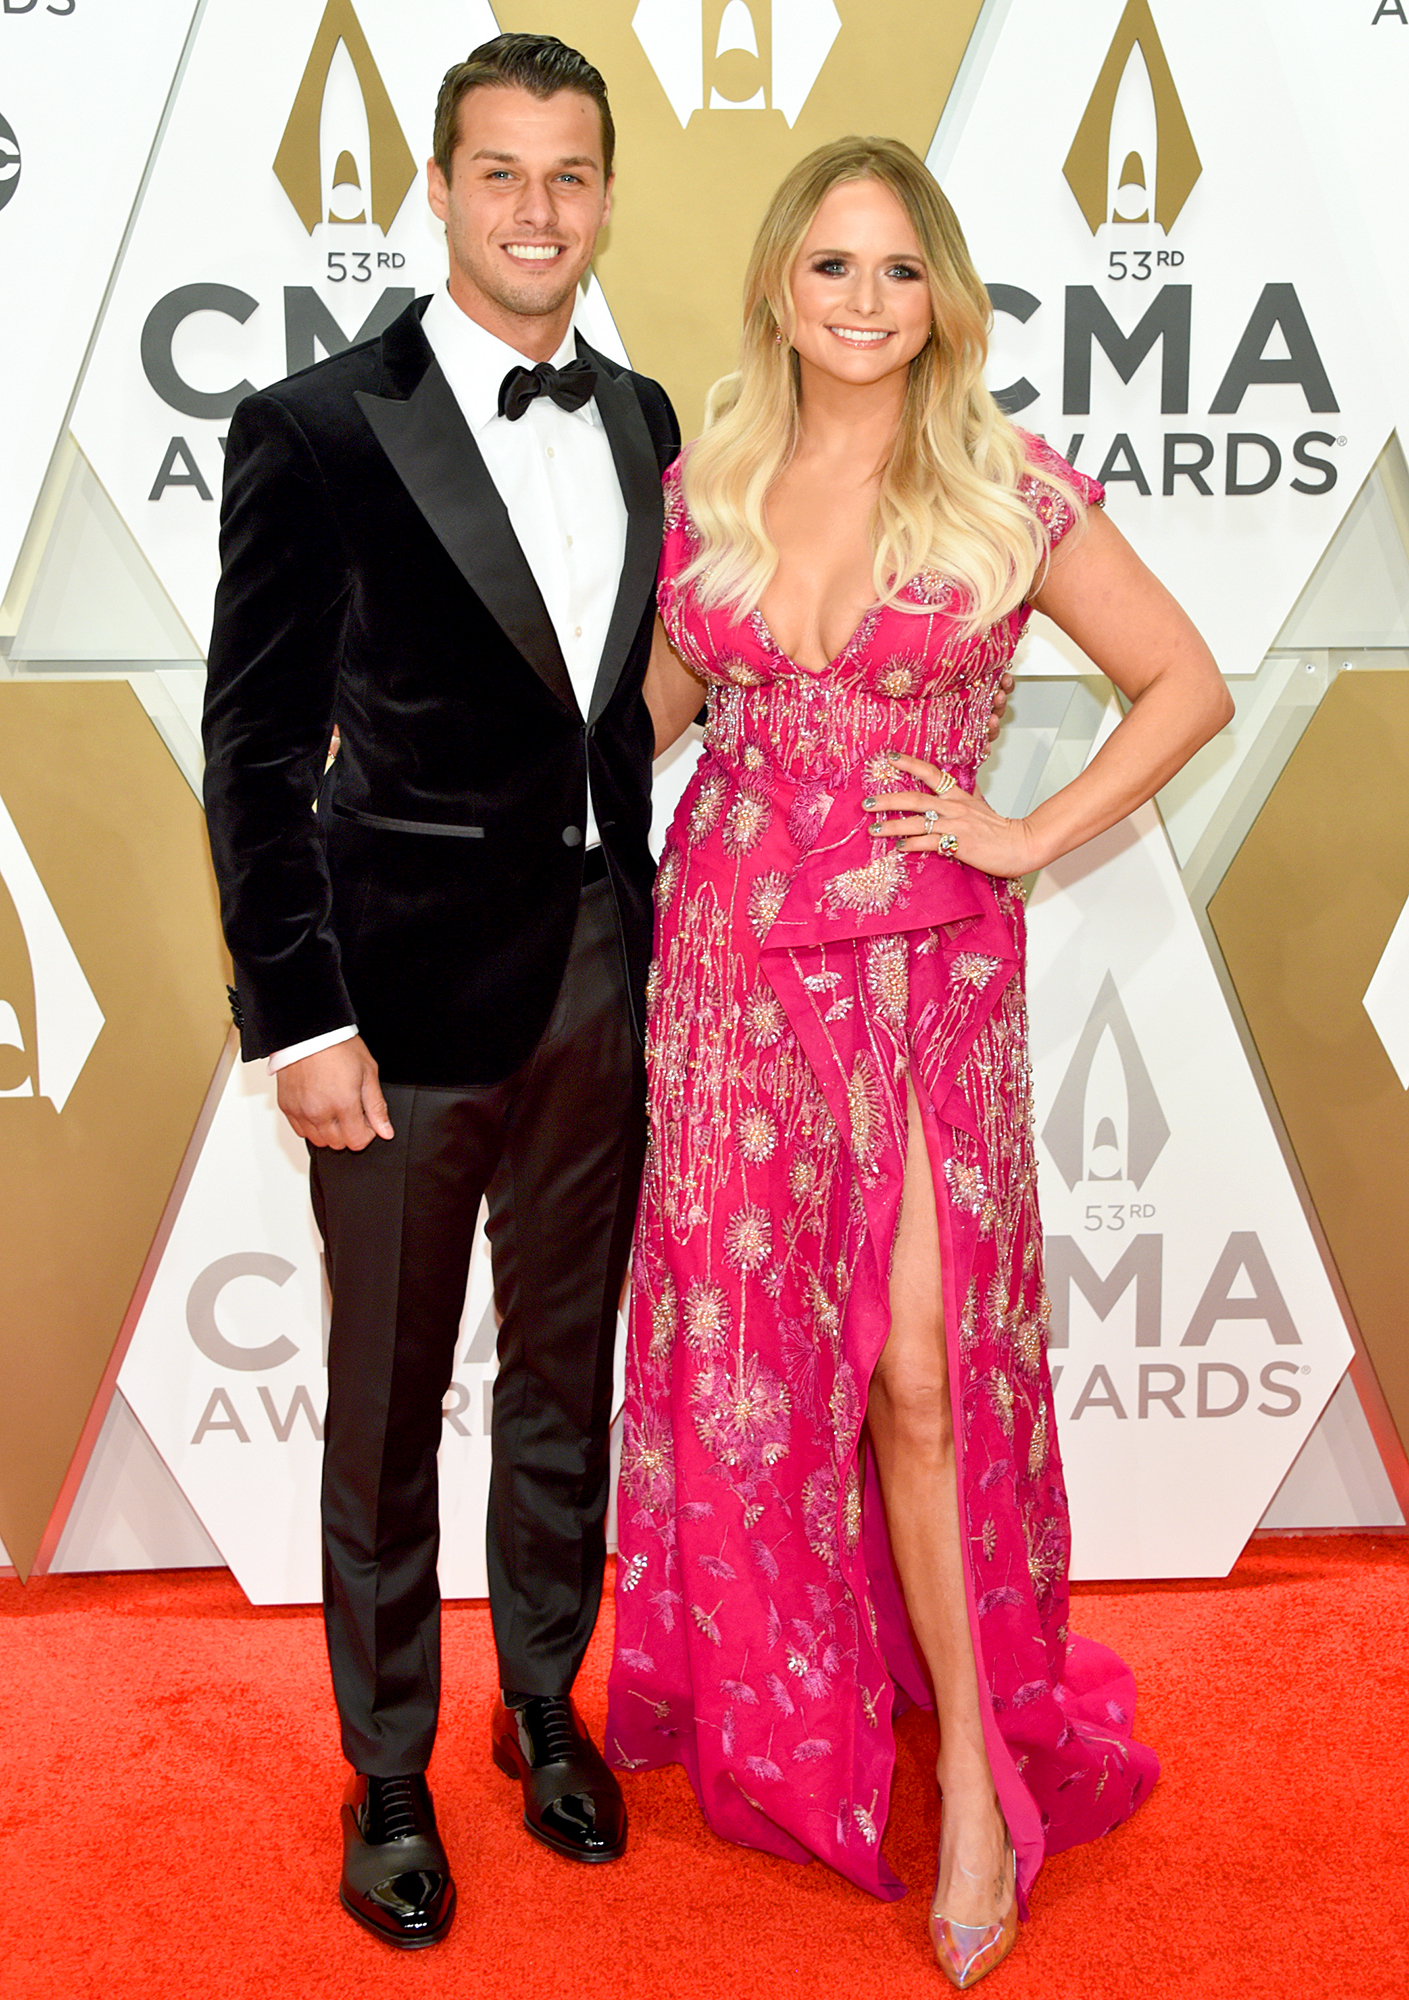 Brendan Mcloughlin and Miranda Lambert